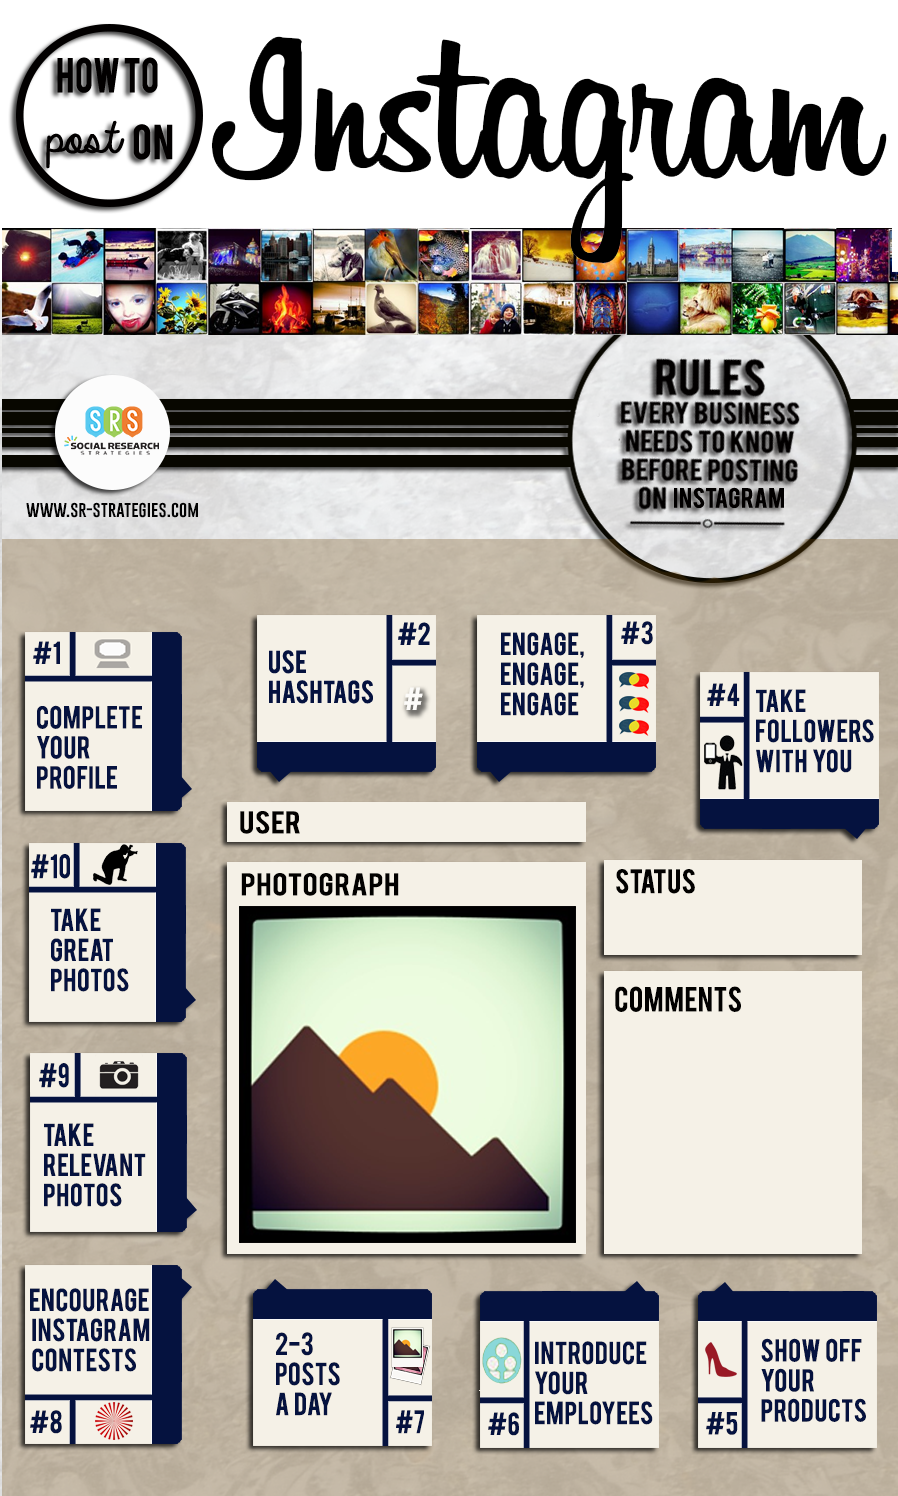 10 rules that every business needs to know before they post on Instagram